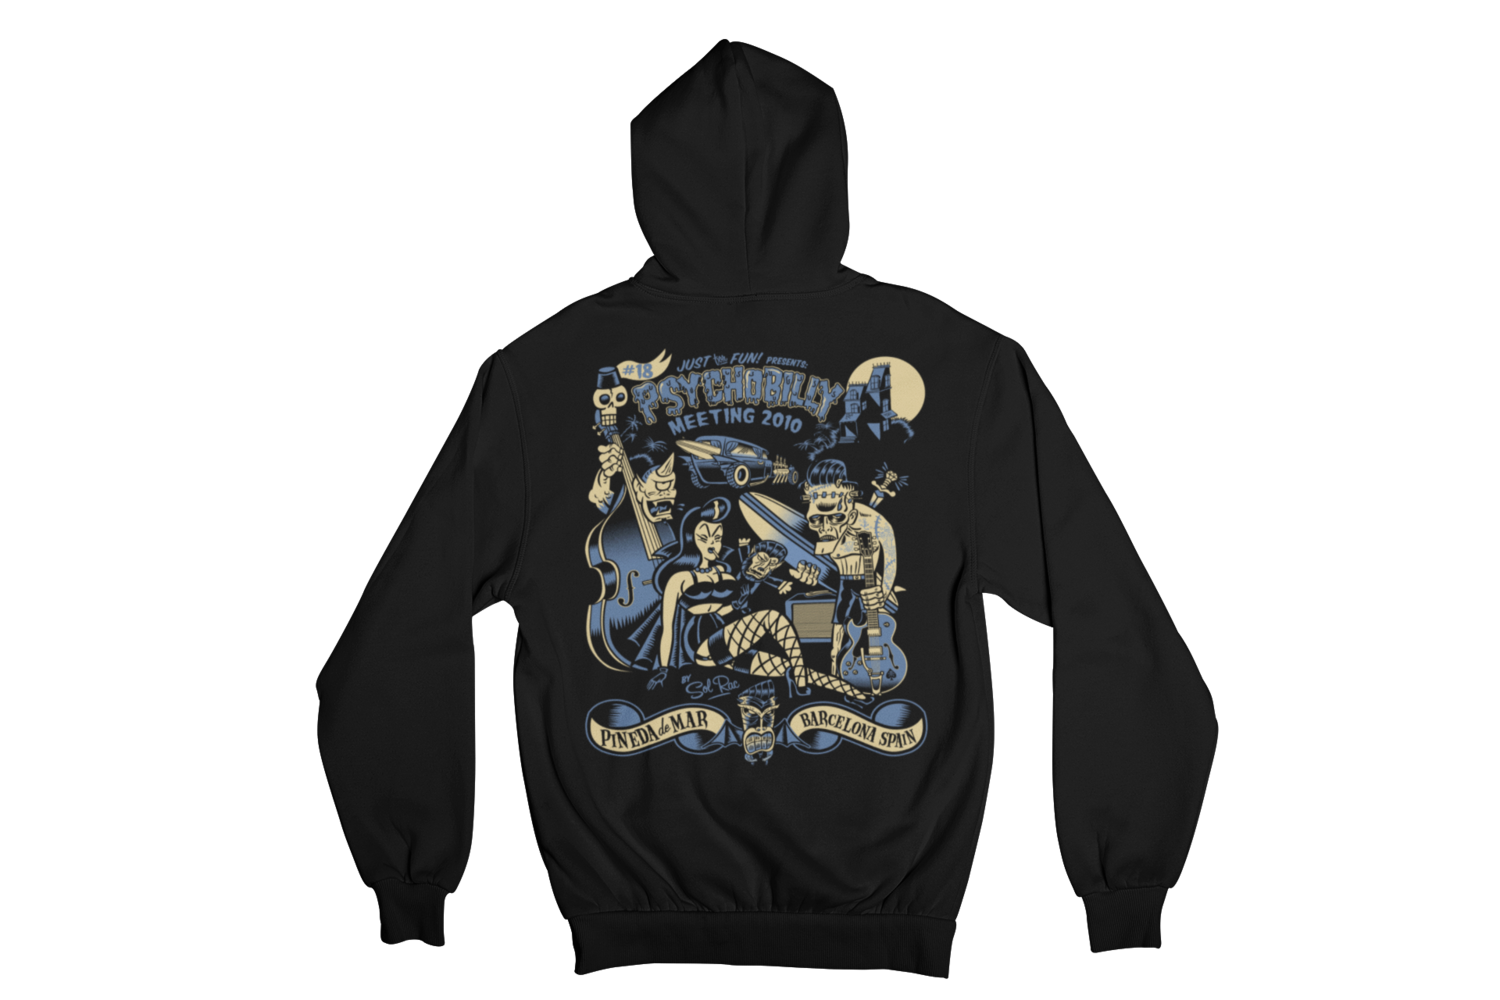 PSYCHOBILLY MEETING 2010 Hoodie ZIP by SOLRAC WOMAN